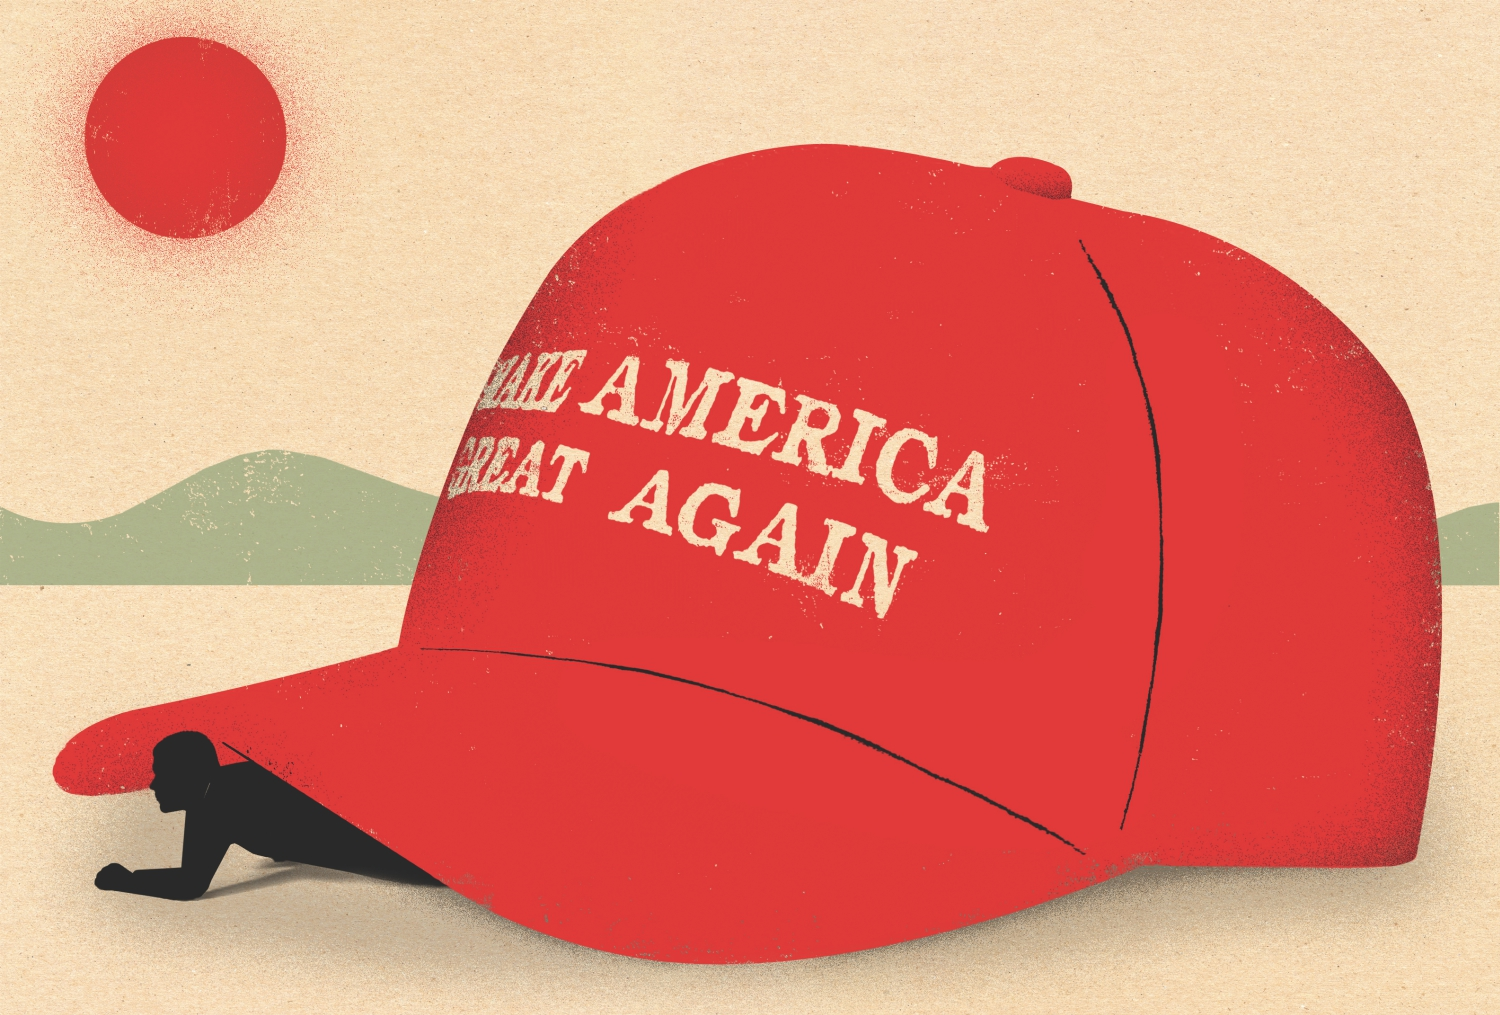 maga hat los angeles joel stein